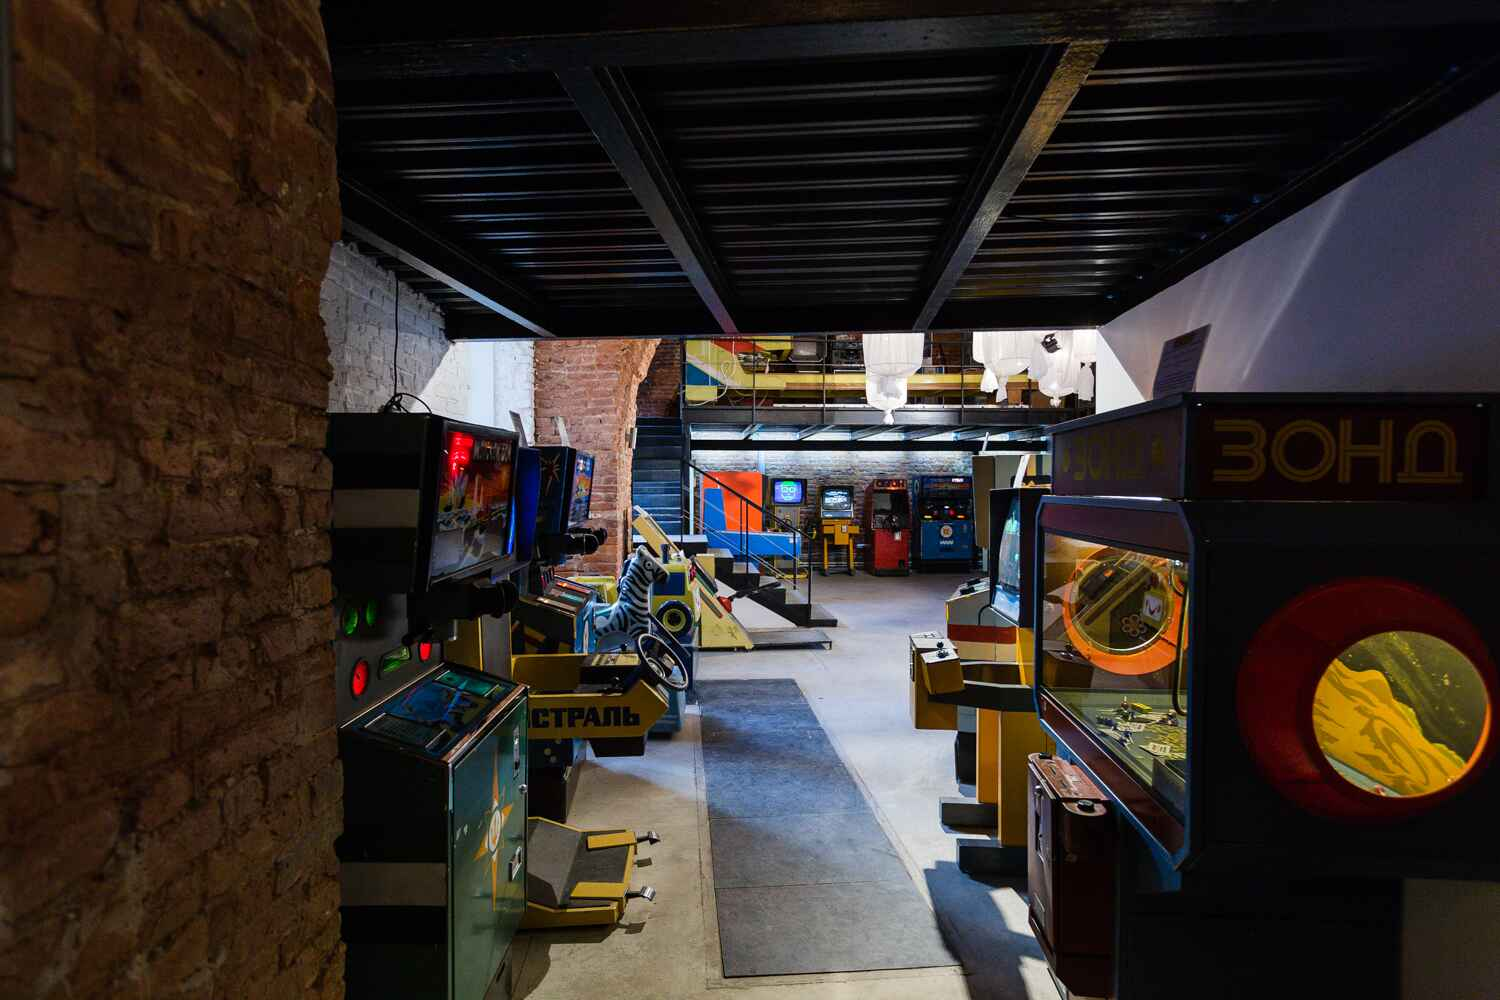 : Museum of Soviet arcade machines in Saint Petersburg. St. Petersburg City Pass, Фото 6